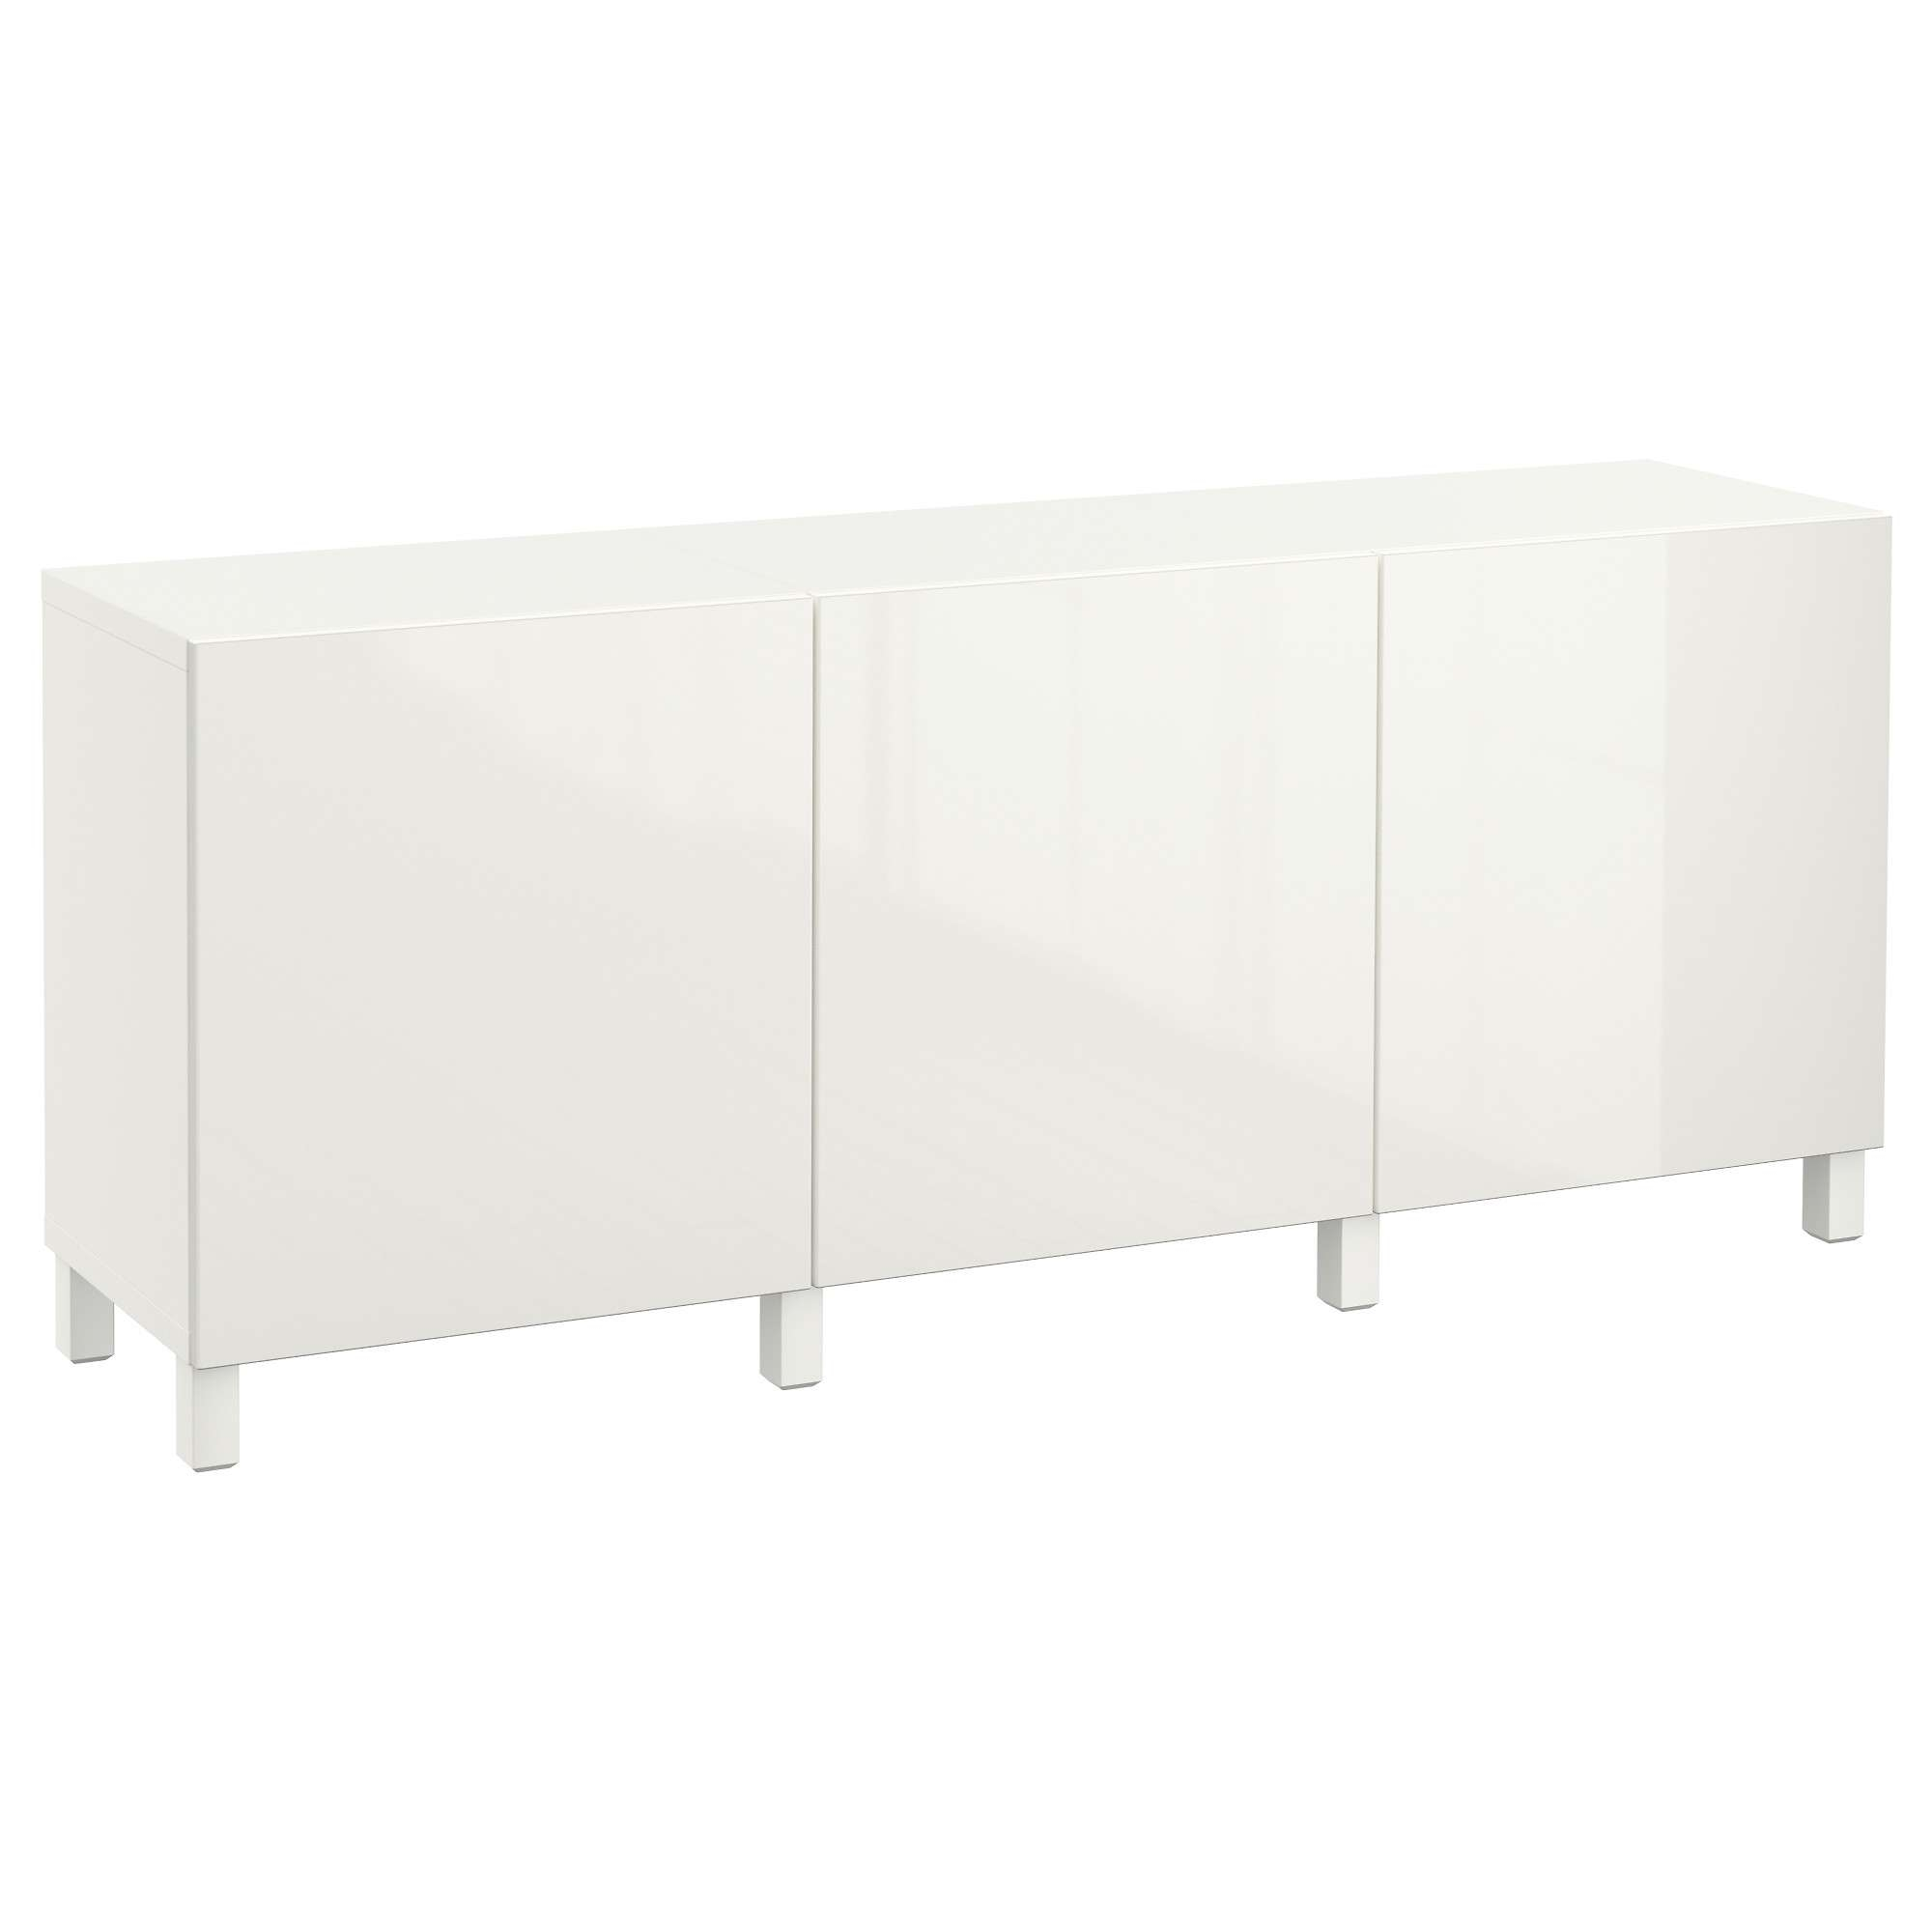 Bestå Storage Combination With Doors – White/selsviken High Gloss Throughout White Sideboards (View 3 of 20)